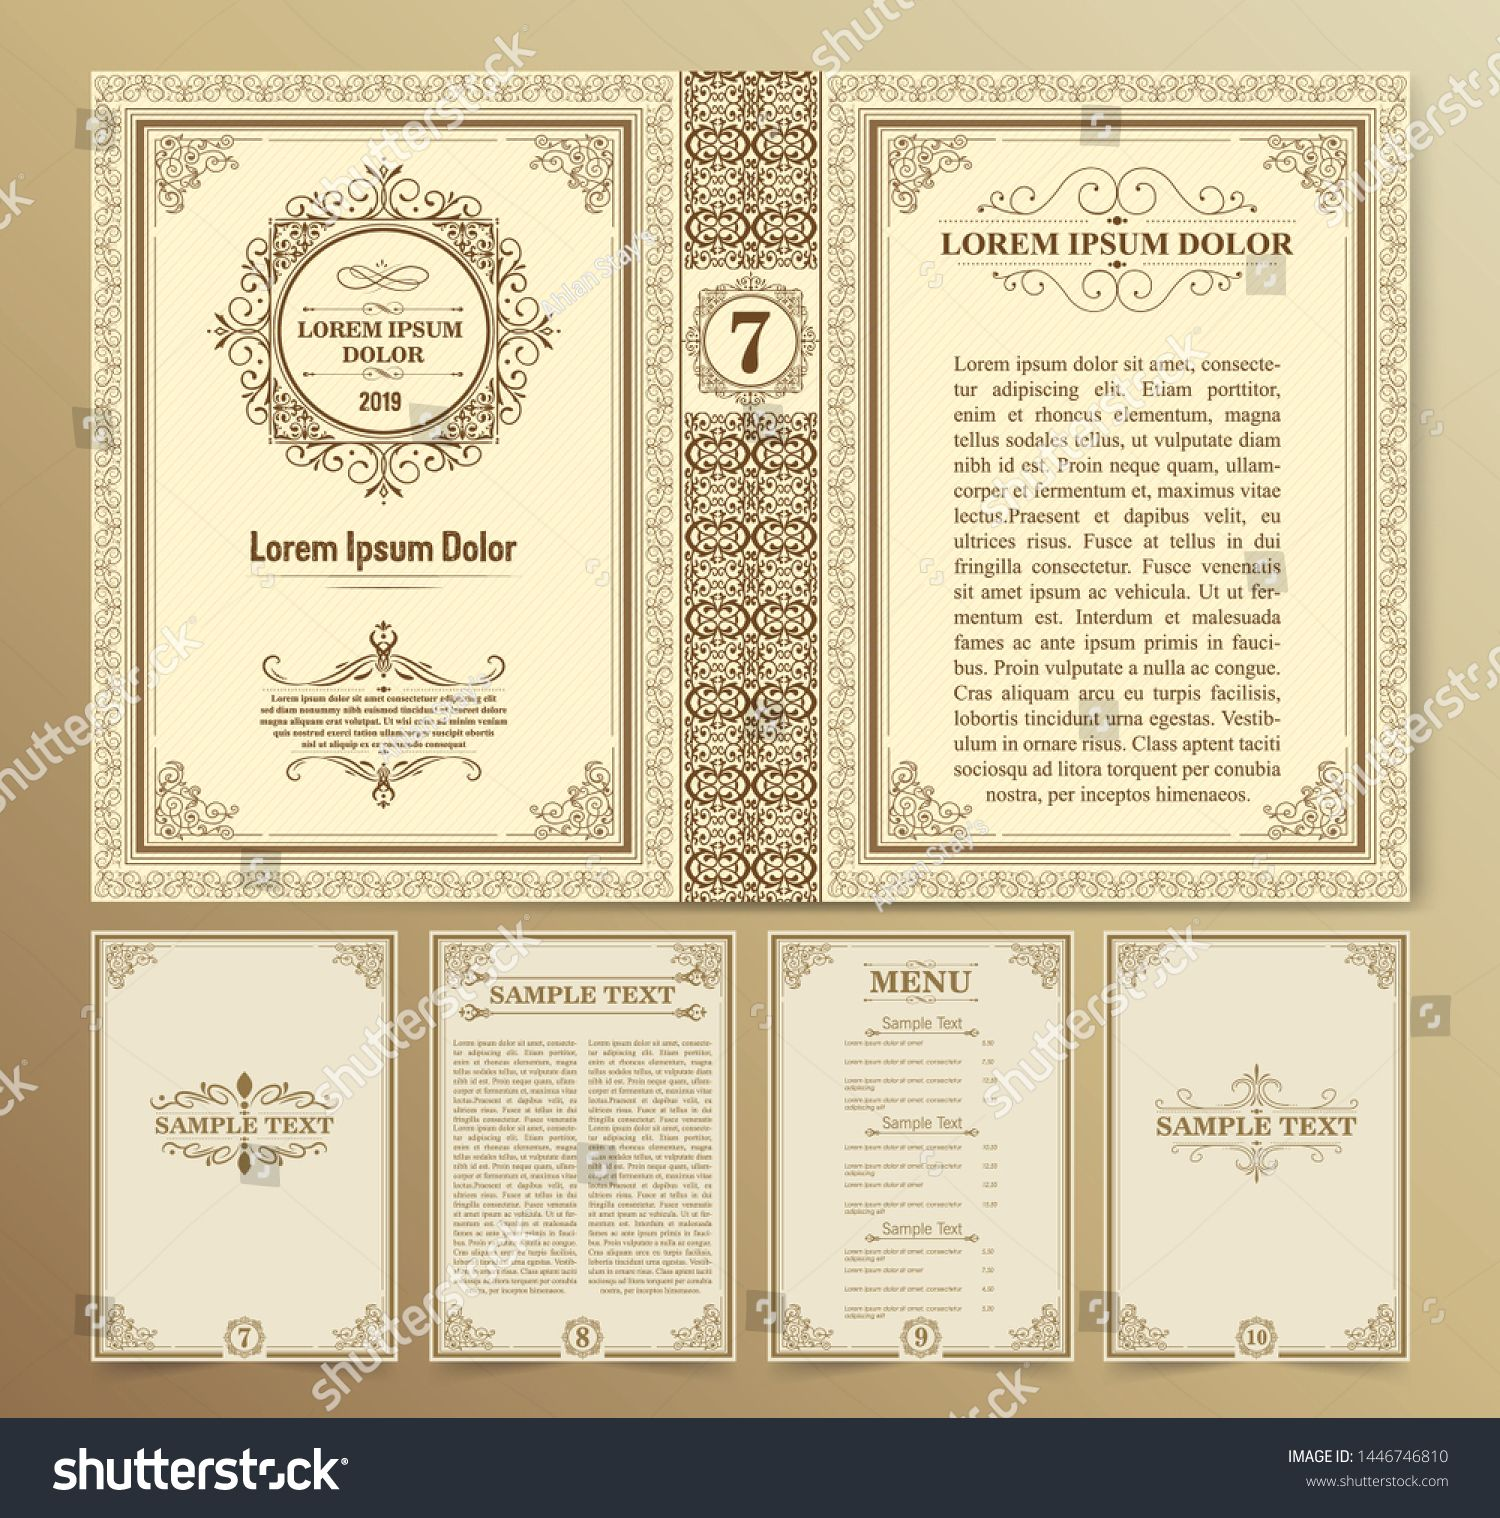 Vintage Book Layouts And Design Covers And Pages Classical Rich Frames Dividers Corners Borders Luxury Ornam Book Design Layout Book Layout Cover Design